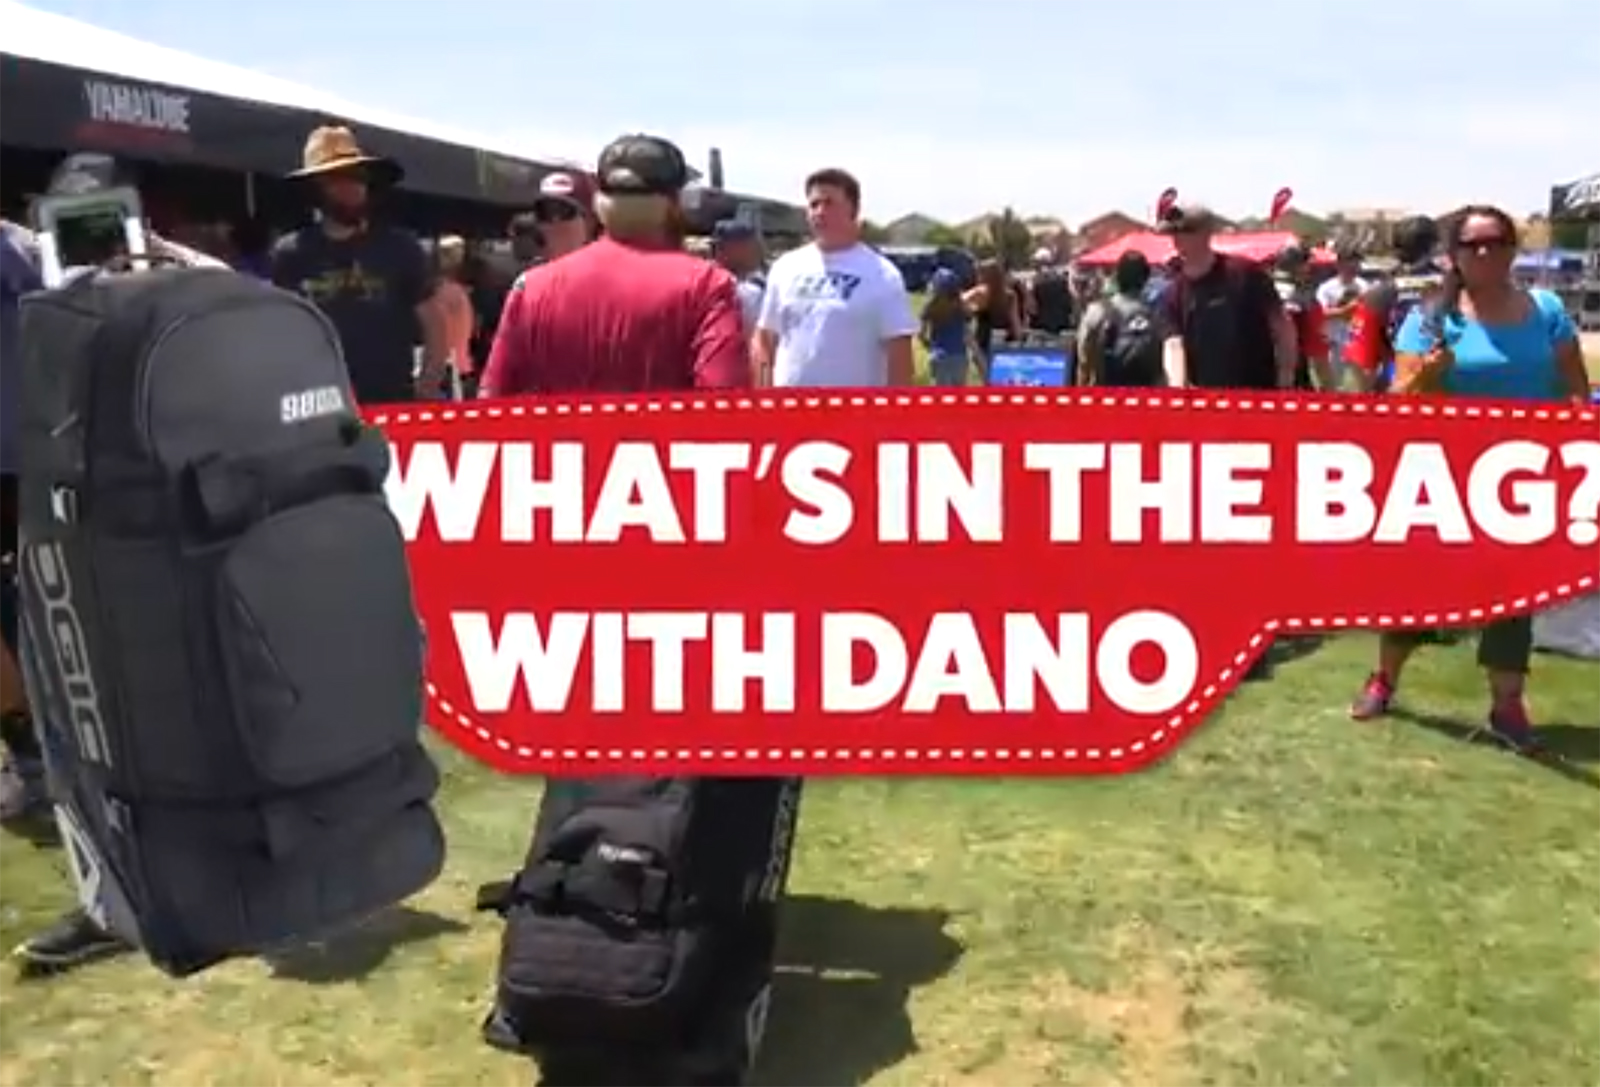 What's in the bag, Dano?